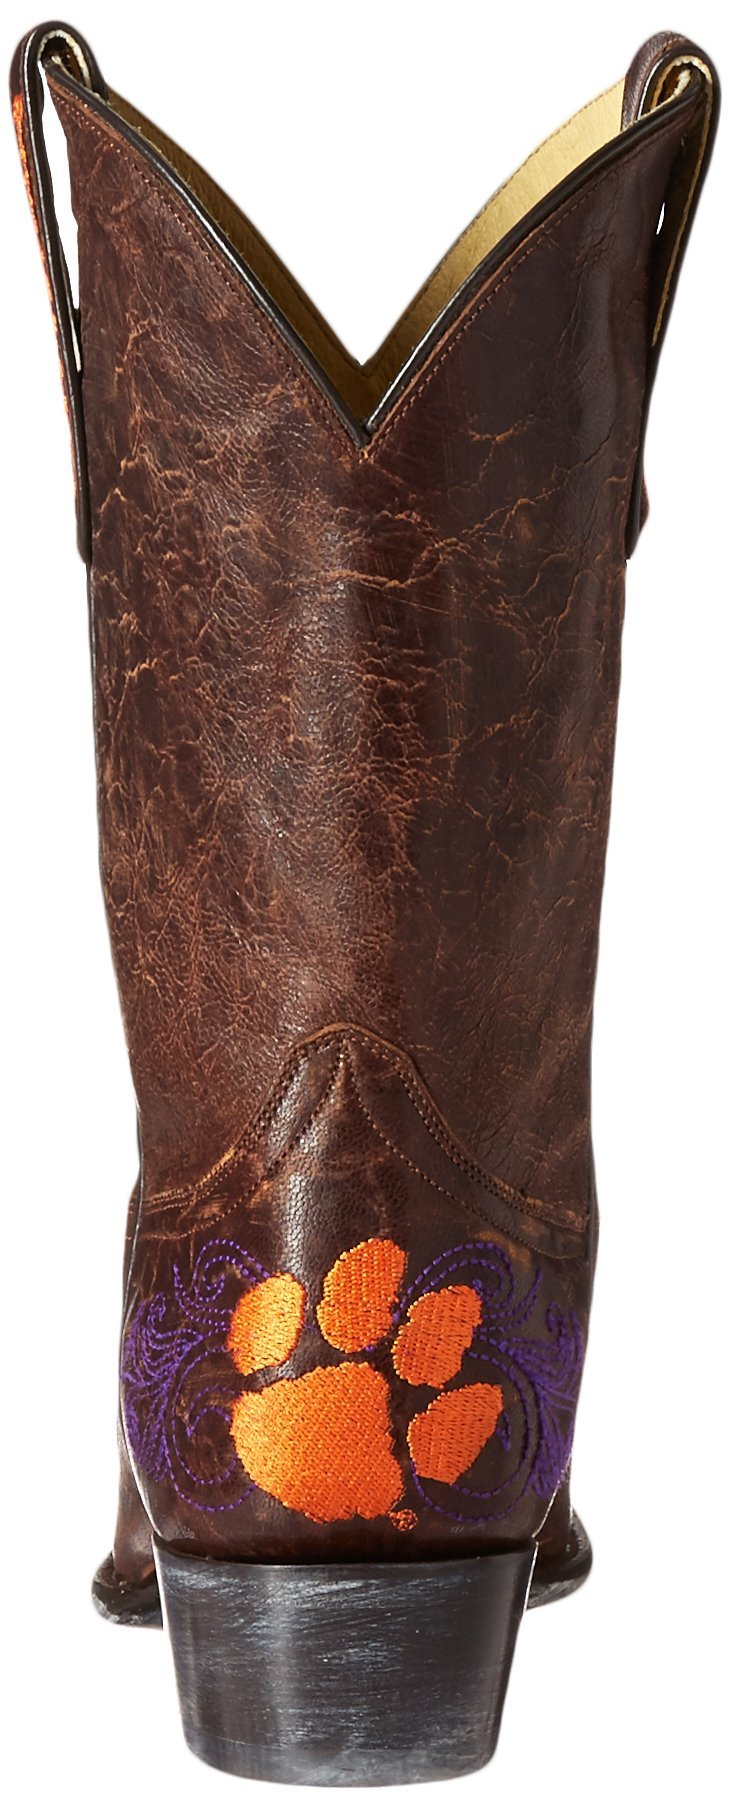 Gameday-Boots-NCAA-Clemson-Tigers-Women-039-s-10-Inch-Choose-SZ-color miniature 3